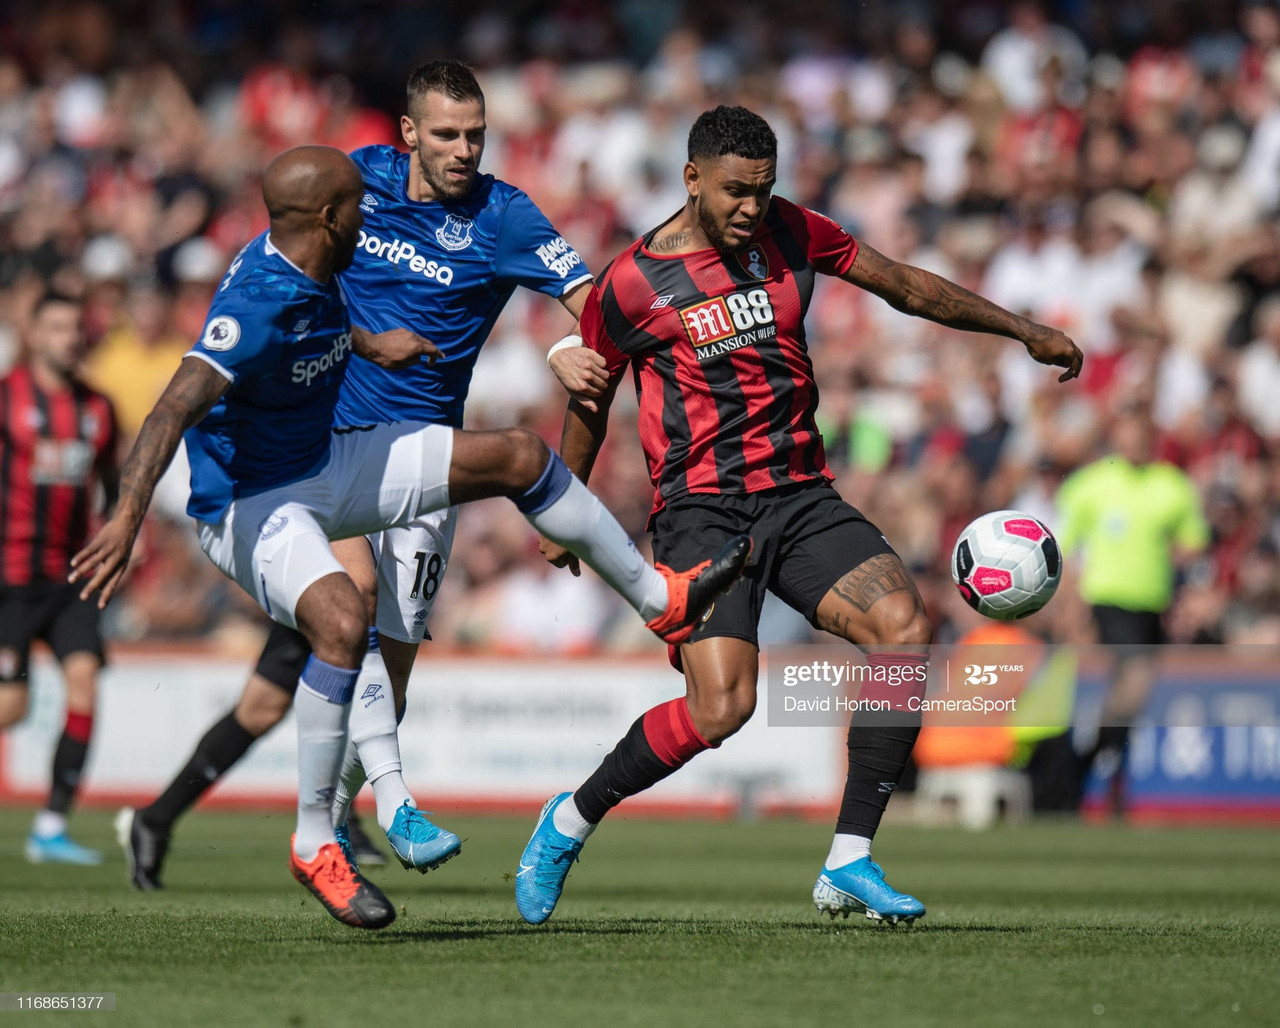 Everton vs Bournemouth match preview: Bournemouth hope for final-day drama